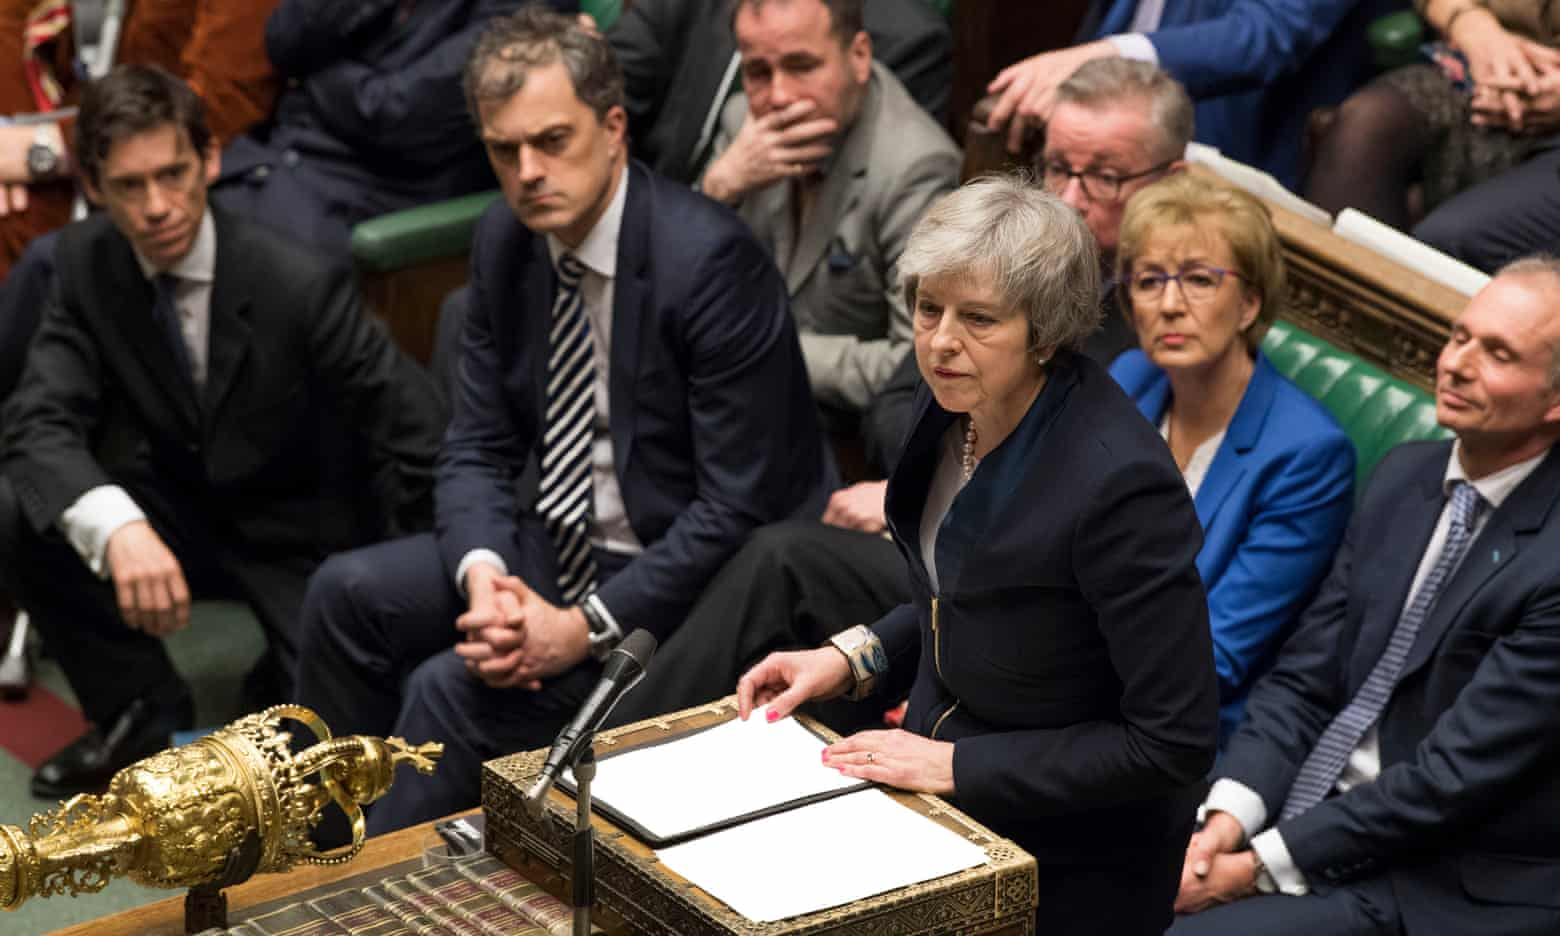 Theresa May speaking in the House of Commons after losing a vote on her Brexit deal on Tuesday, she now faces a vote of no confidence proposed by Labour leader Jeremy Corbyn.